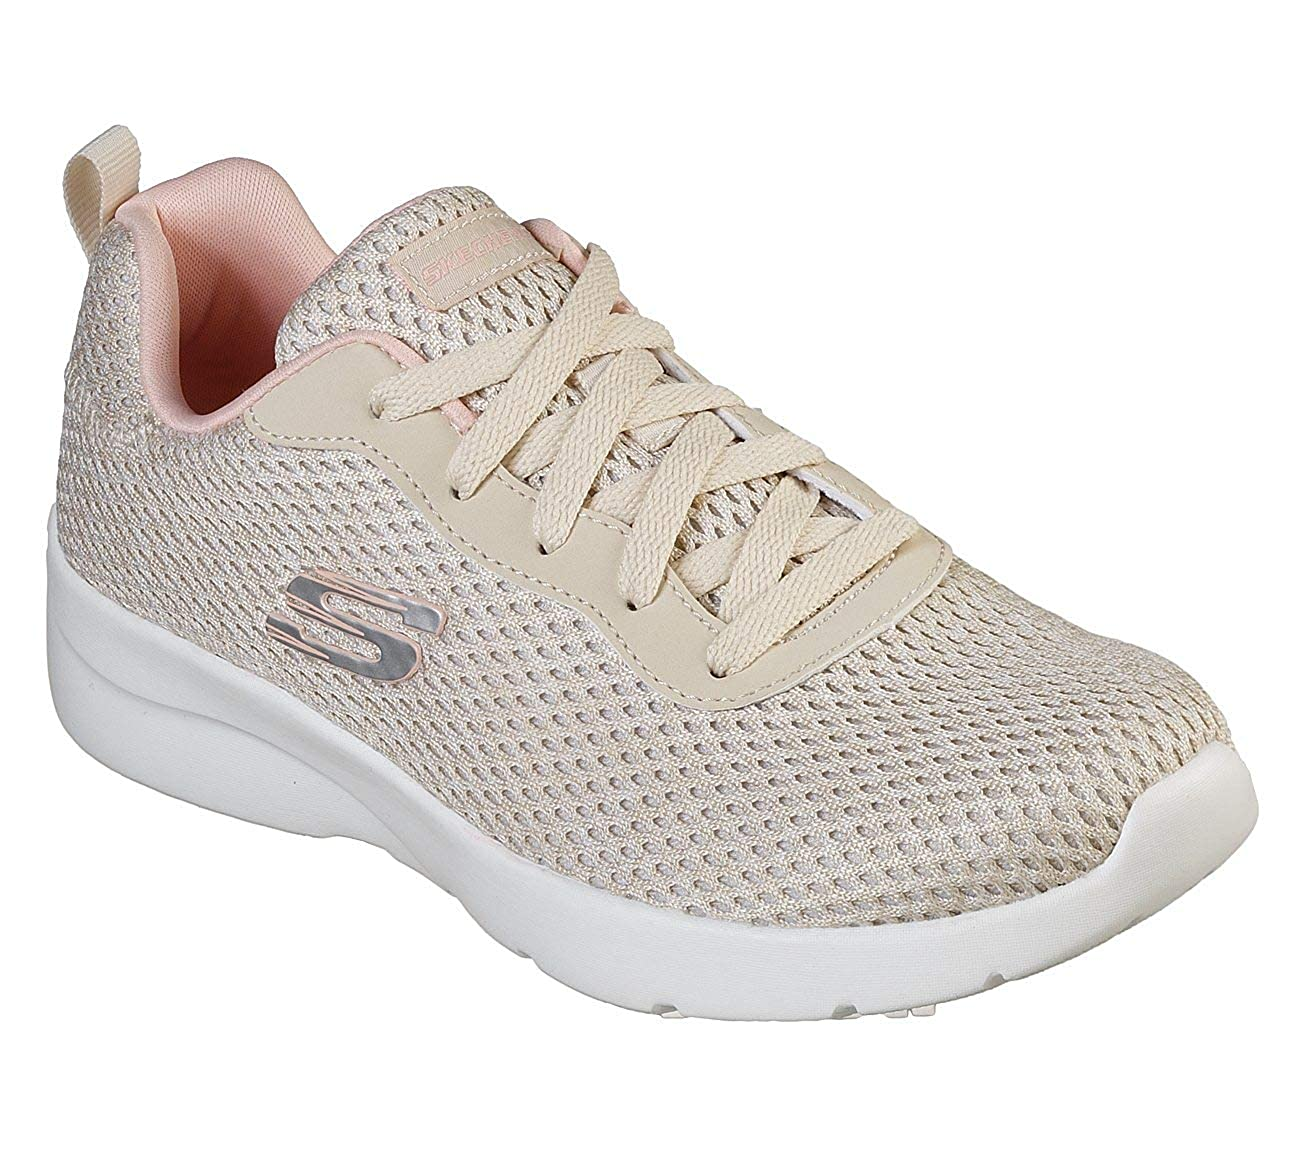 NATURAL CORAL Skechers Womens Dynamight 2.0-Quick Concept Sneakers